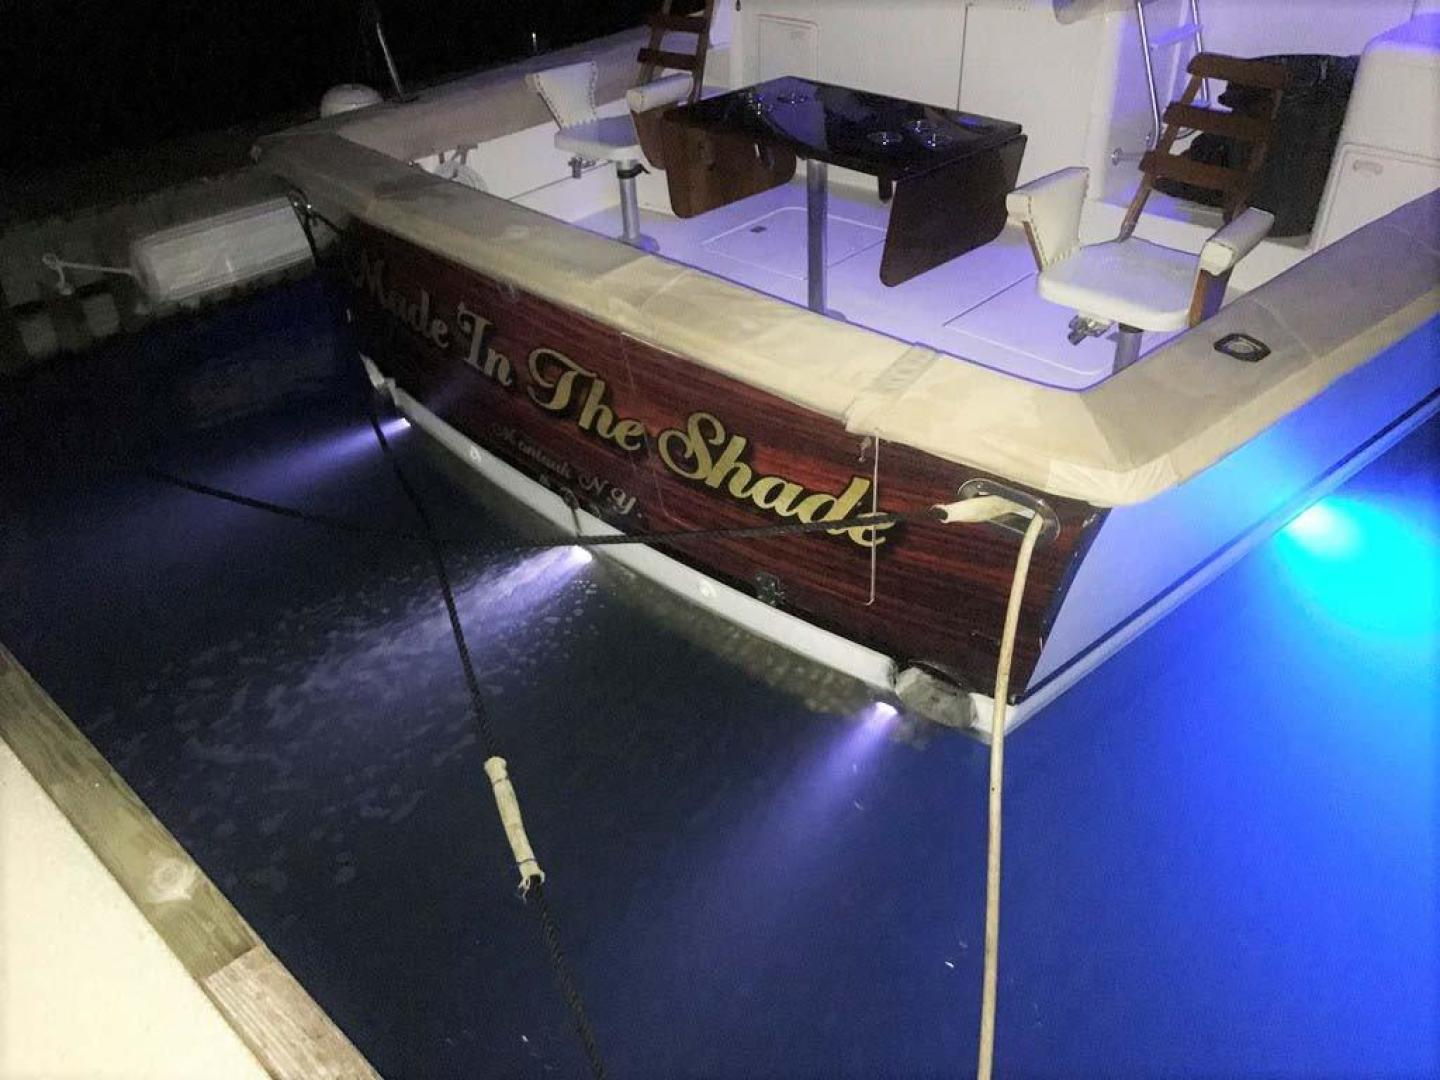 Ocean-Yachts-53-Super-Sport-1998-Made-in-the-Shade-Stuart-United-States-Underwater-Lights-929989